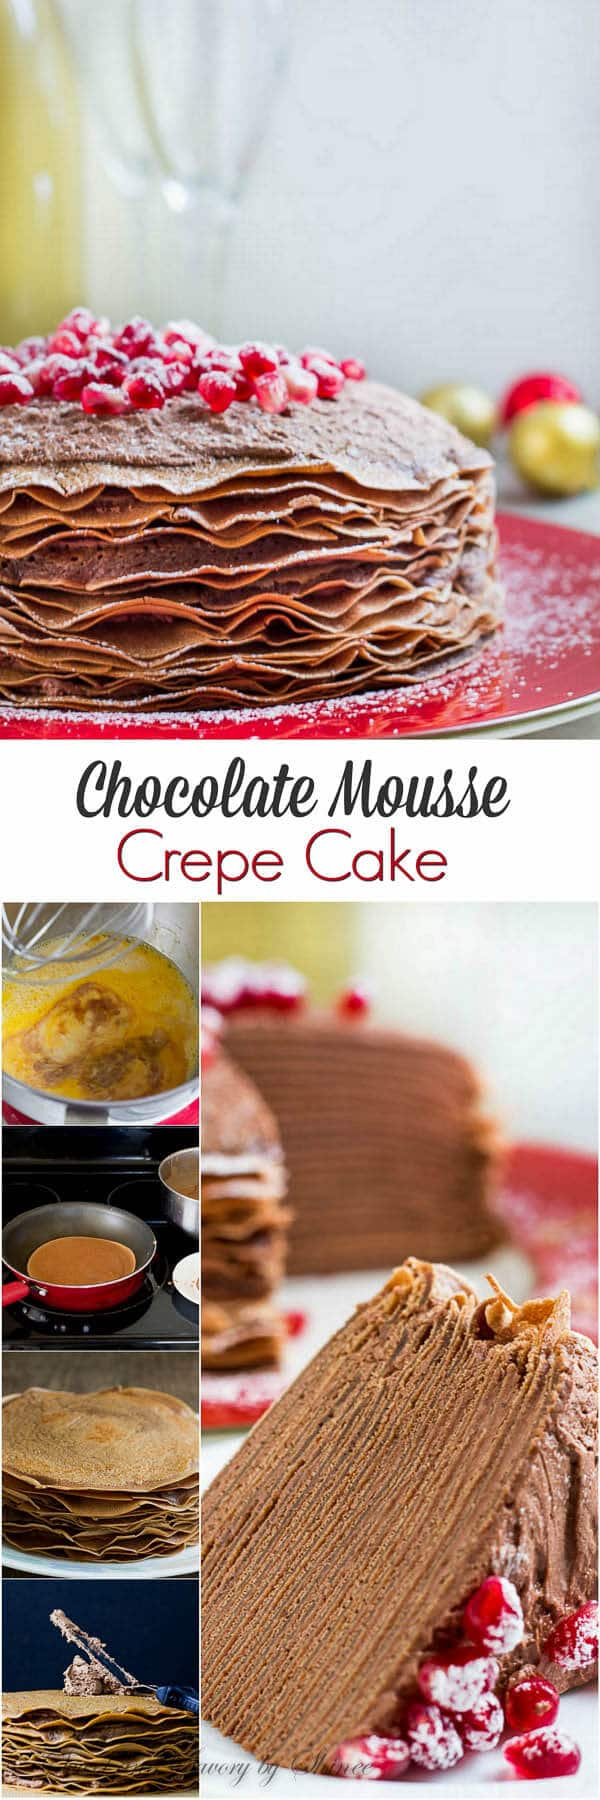 This beautiful chocolate mousse crepe cake is made of 20+ layers of delicate chocolate crepes filled with rich chocolate mousse filling and topped with festive red pomegranates.